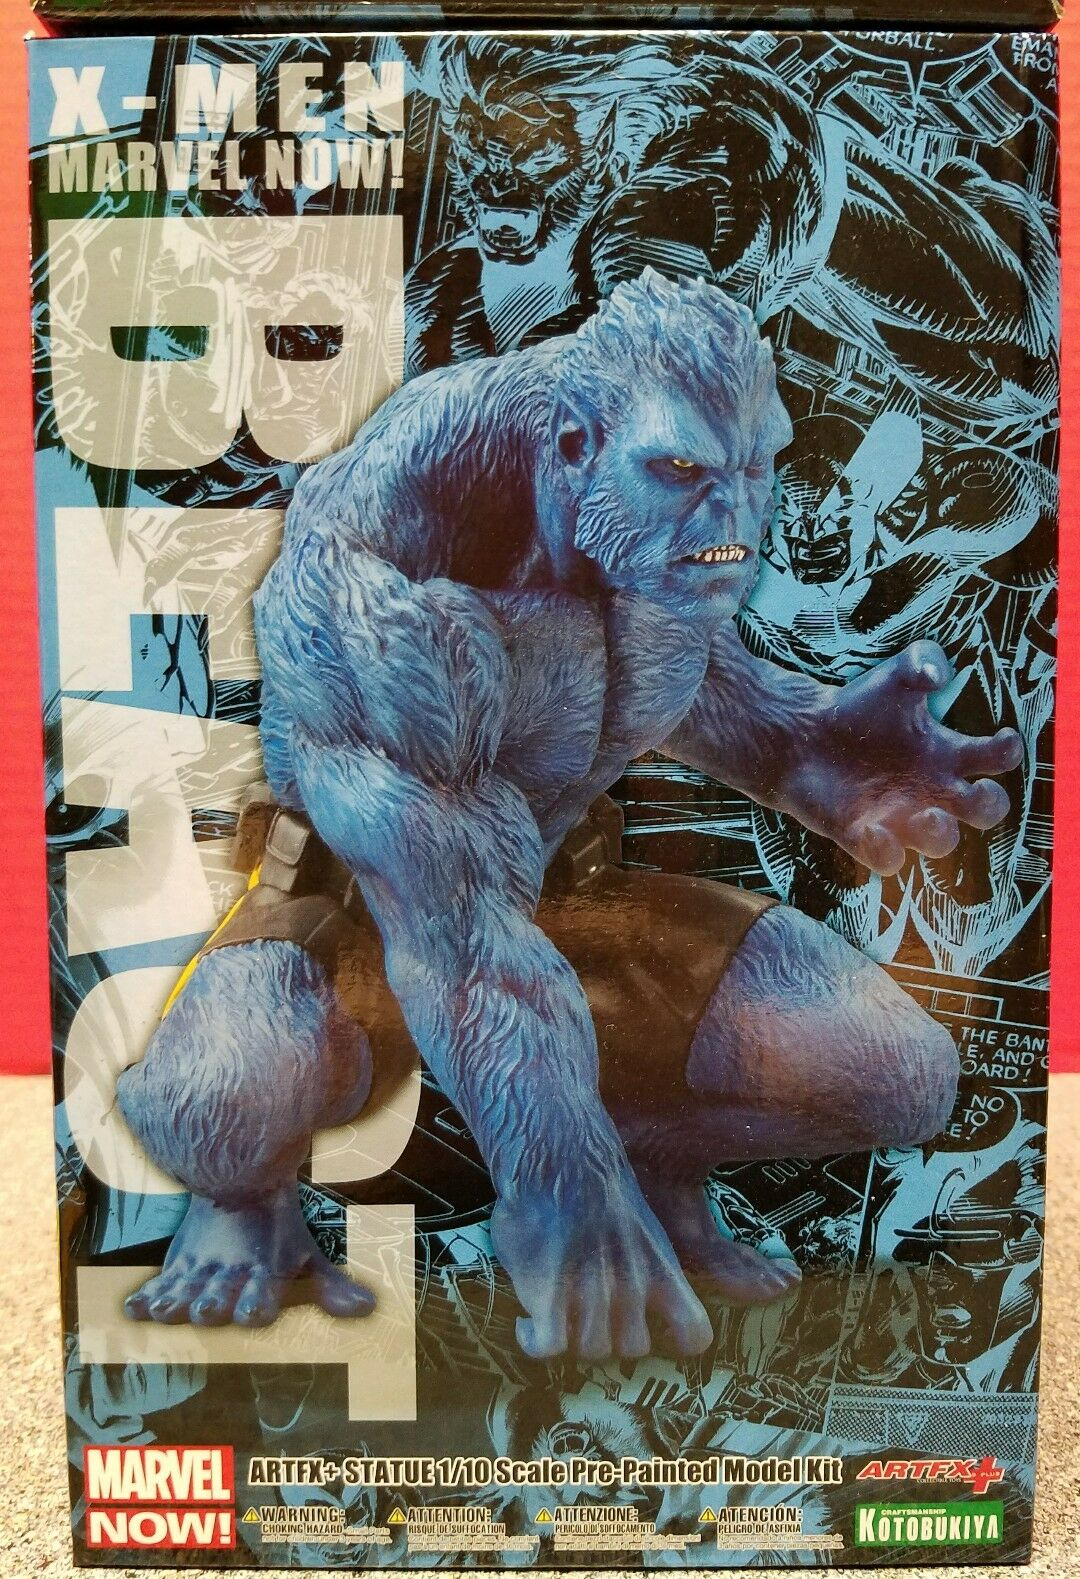 X-Men Beast Figure 1/10 Scale 2015 ARTFX+  2015 Marvel Now  Kotobukiya Snap Fit